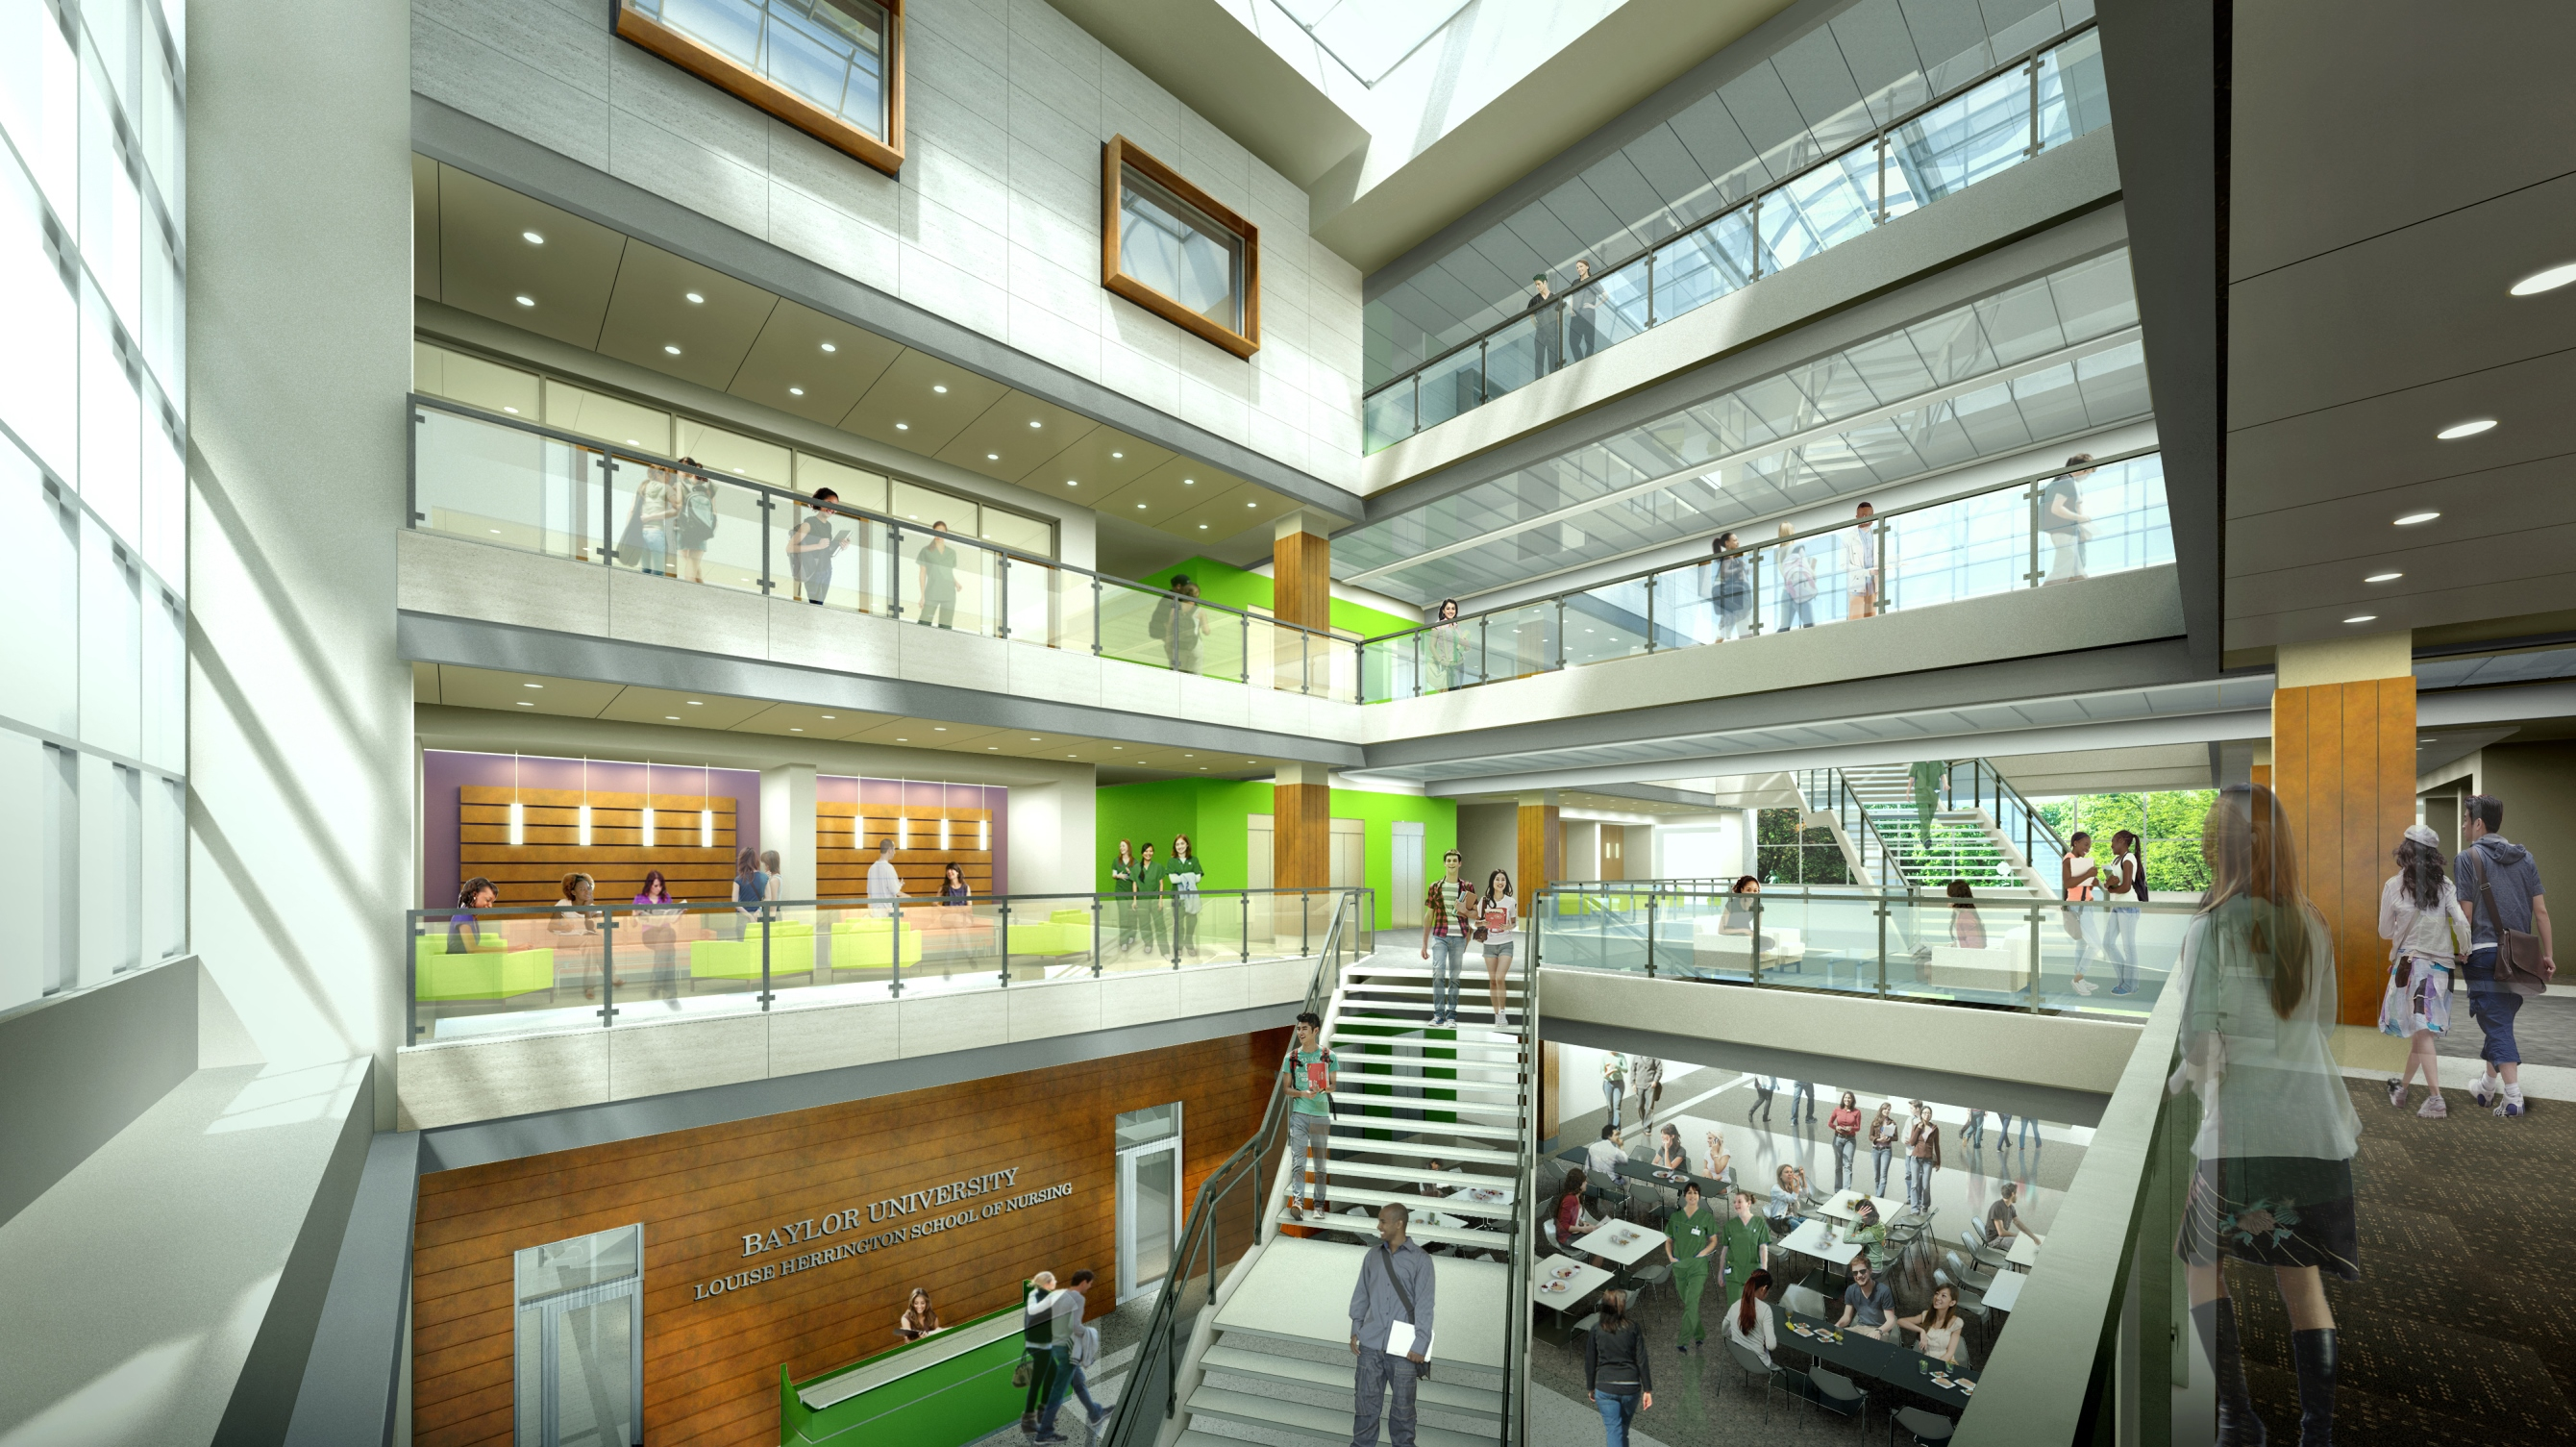 Baylor regents announce significant gift from drayton - Interior design schools in alabama ...